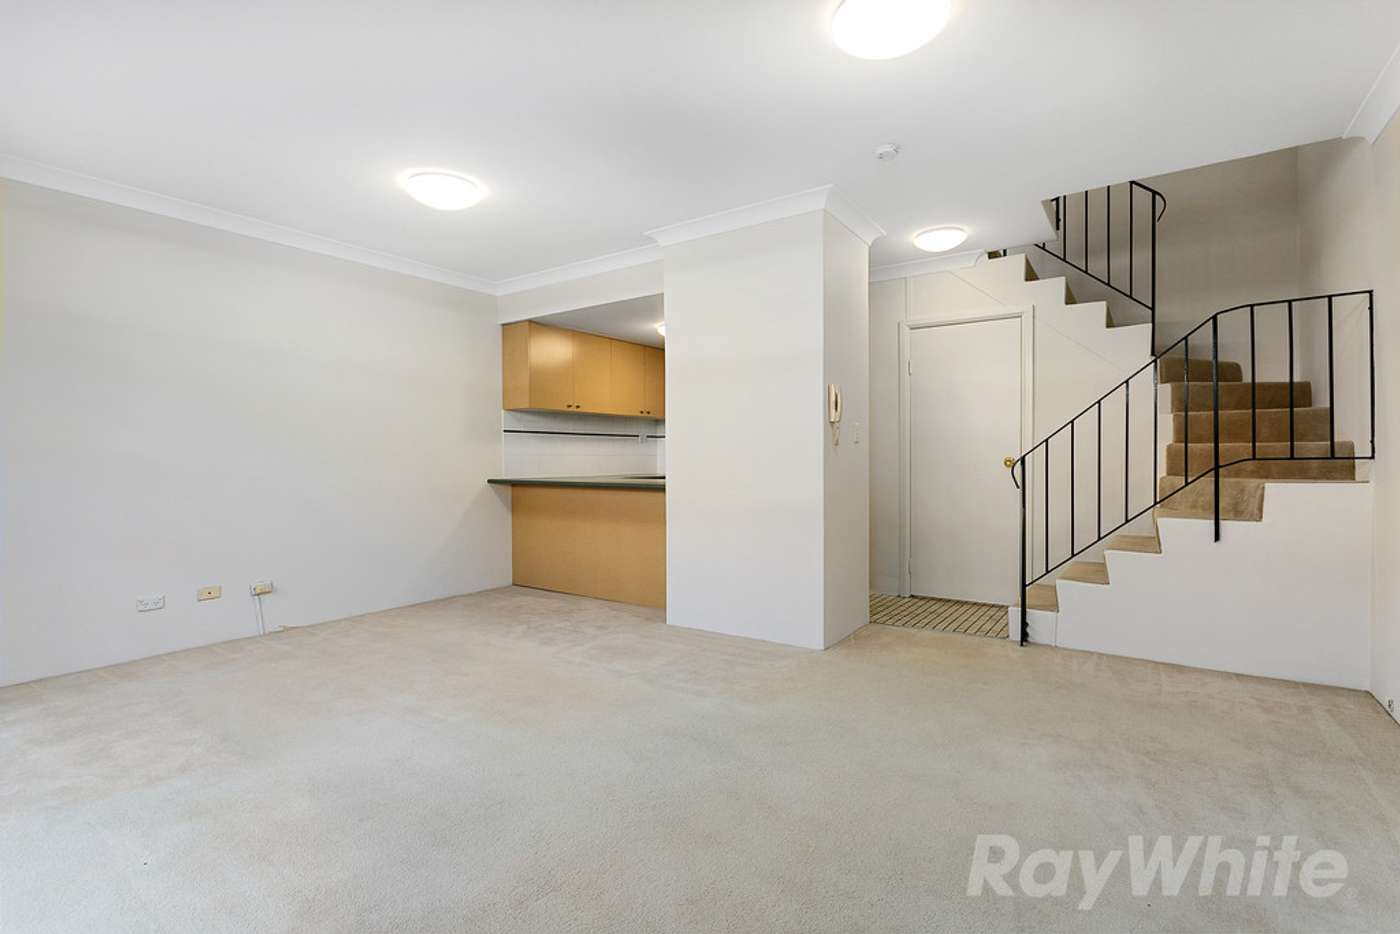 Main view of Homely townhouse listing, 10 / 181 Missenden Rd, Newtown NSW 2042